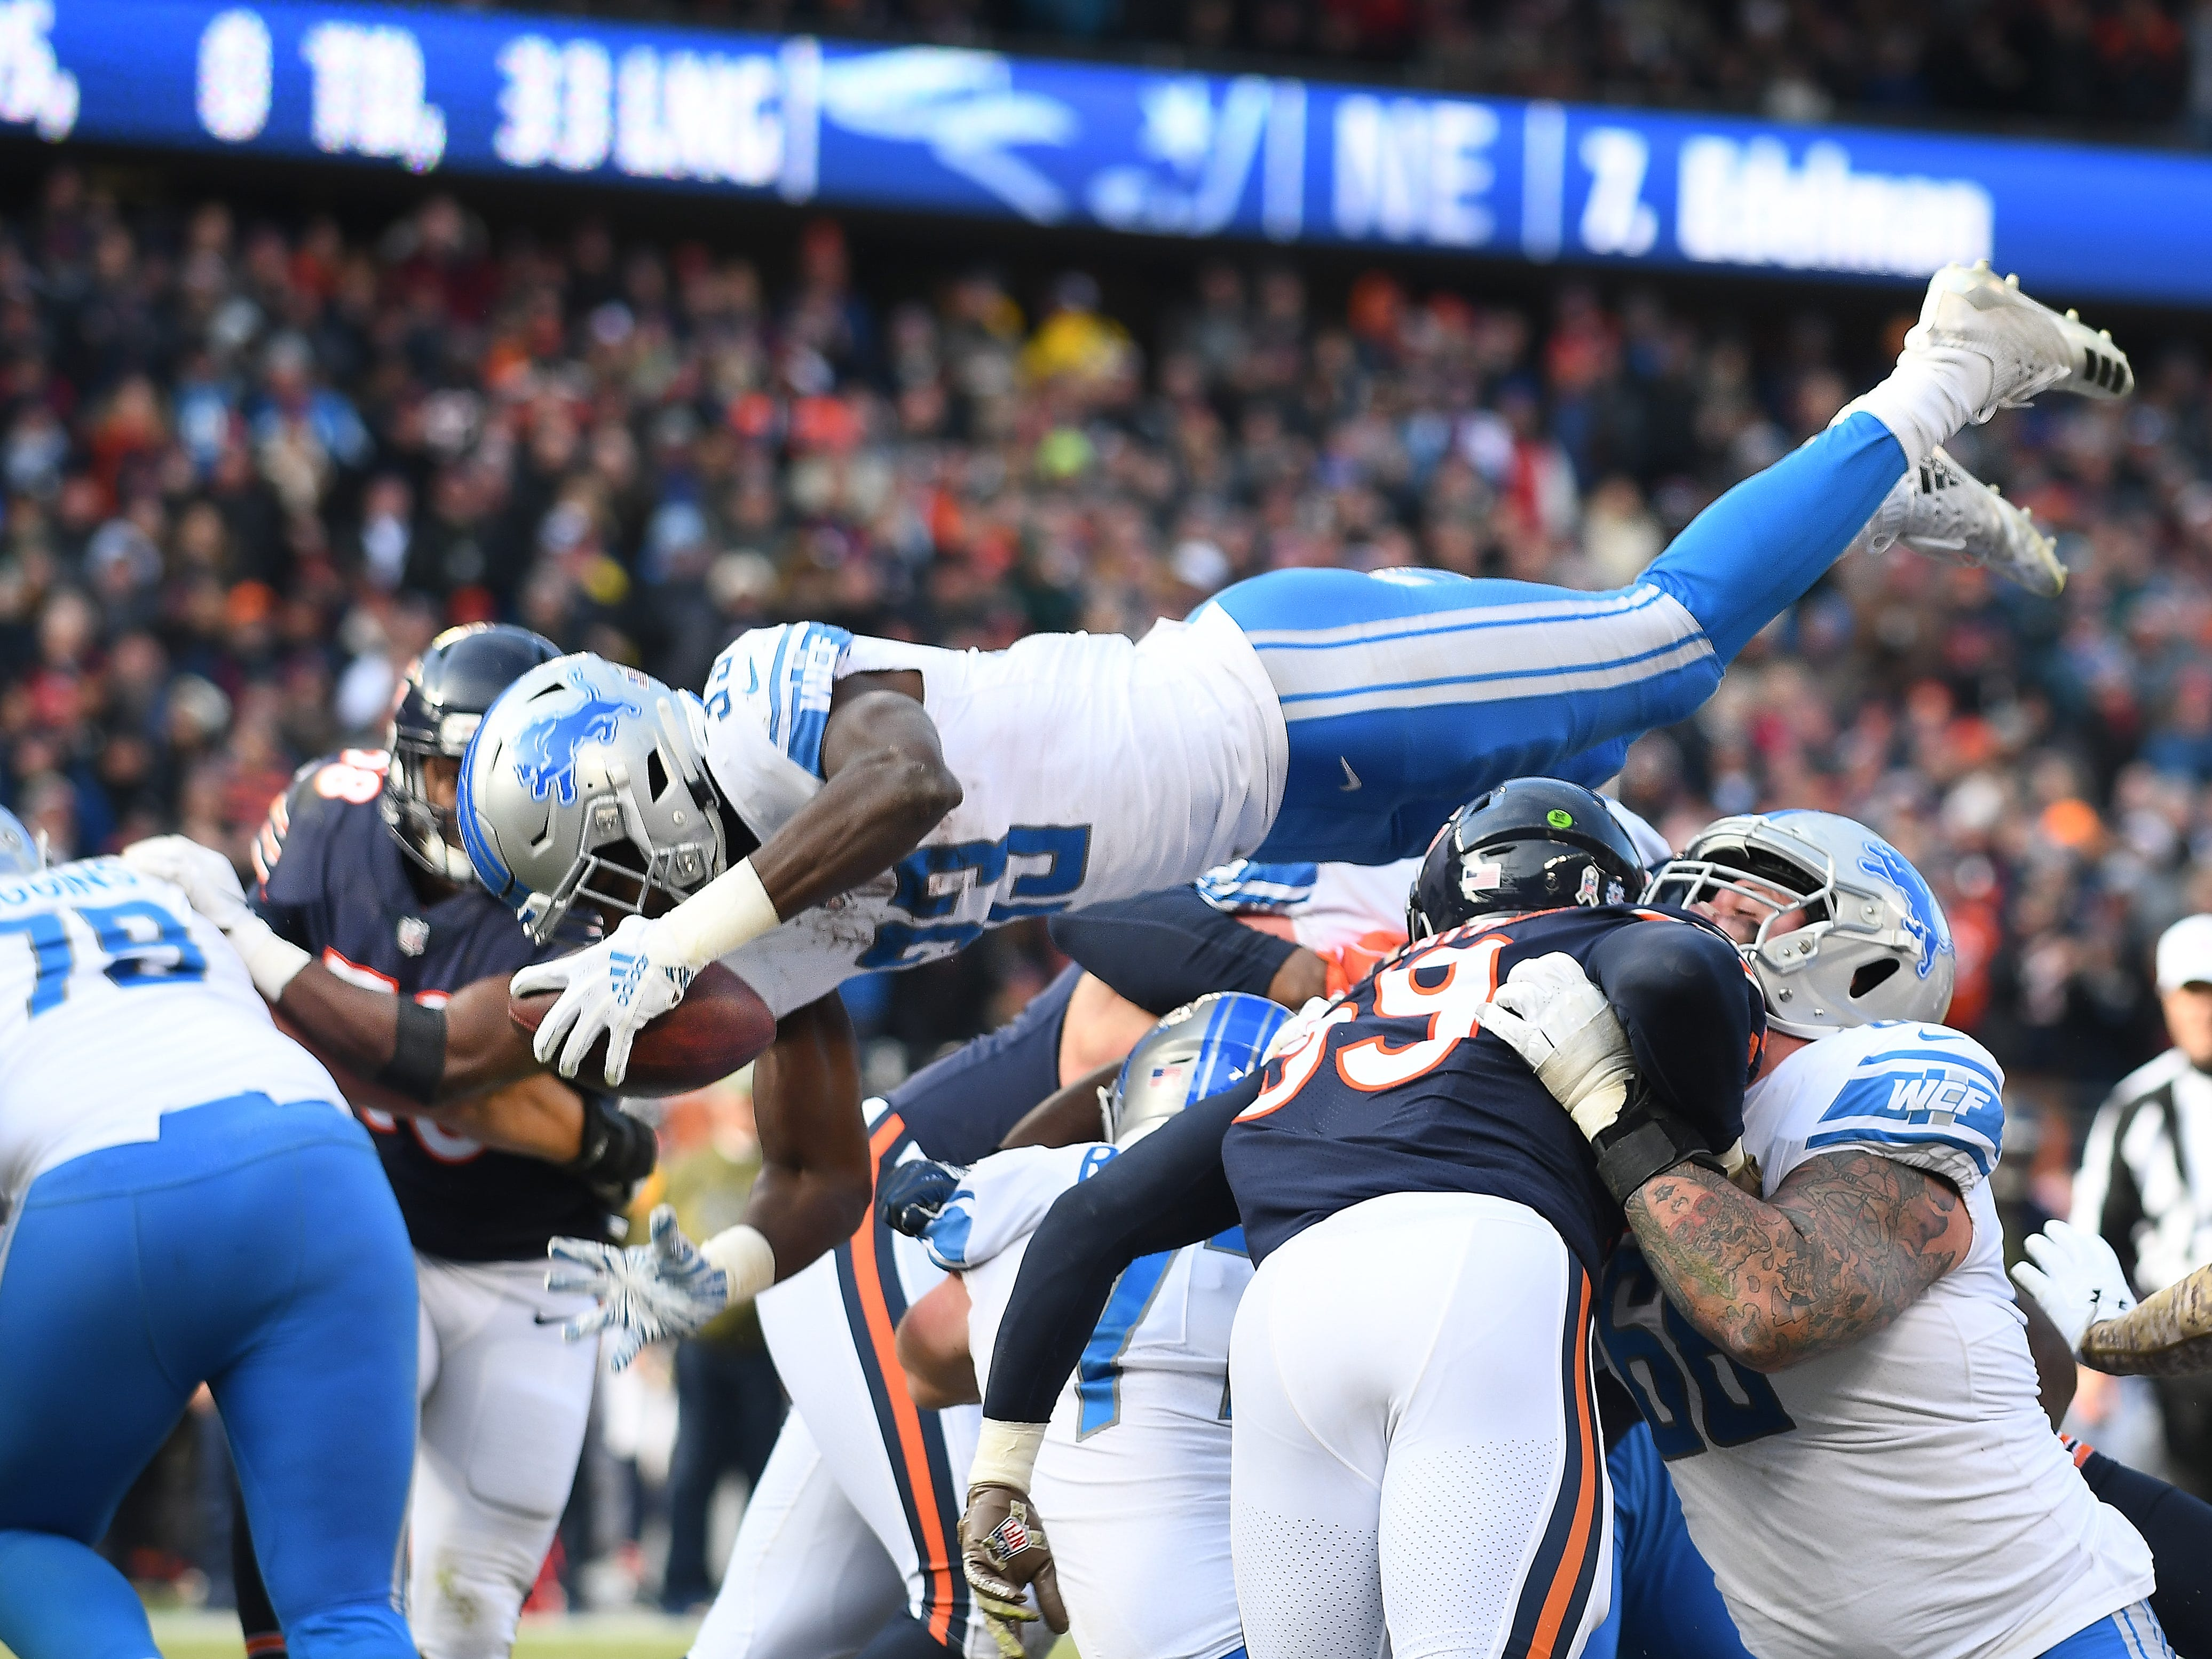 Lions running back Kerryon Johnson goes over the top for a touchdown, the only Detroit score of the 1st half, near the end of the second quarter during a game against thje Chicago Bears at Soldier Field in Chicago, Illinois on November 11, 2018.  Detroit lost to Chicago 34-22.